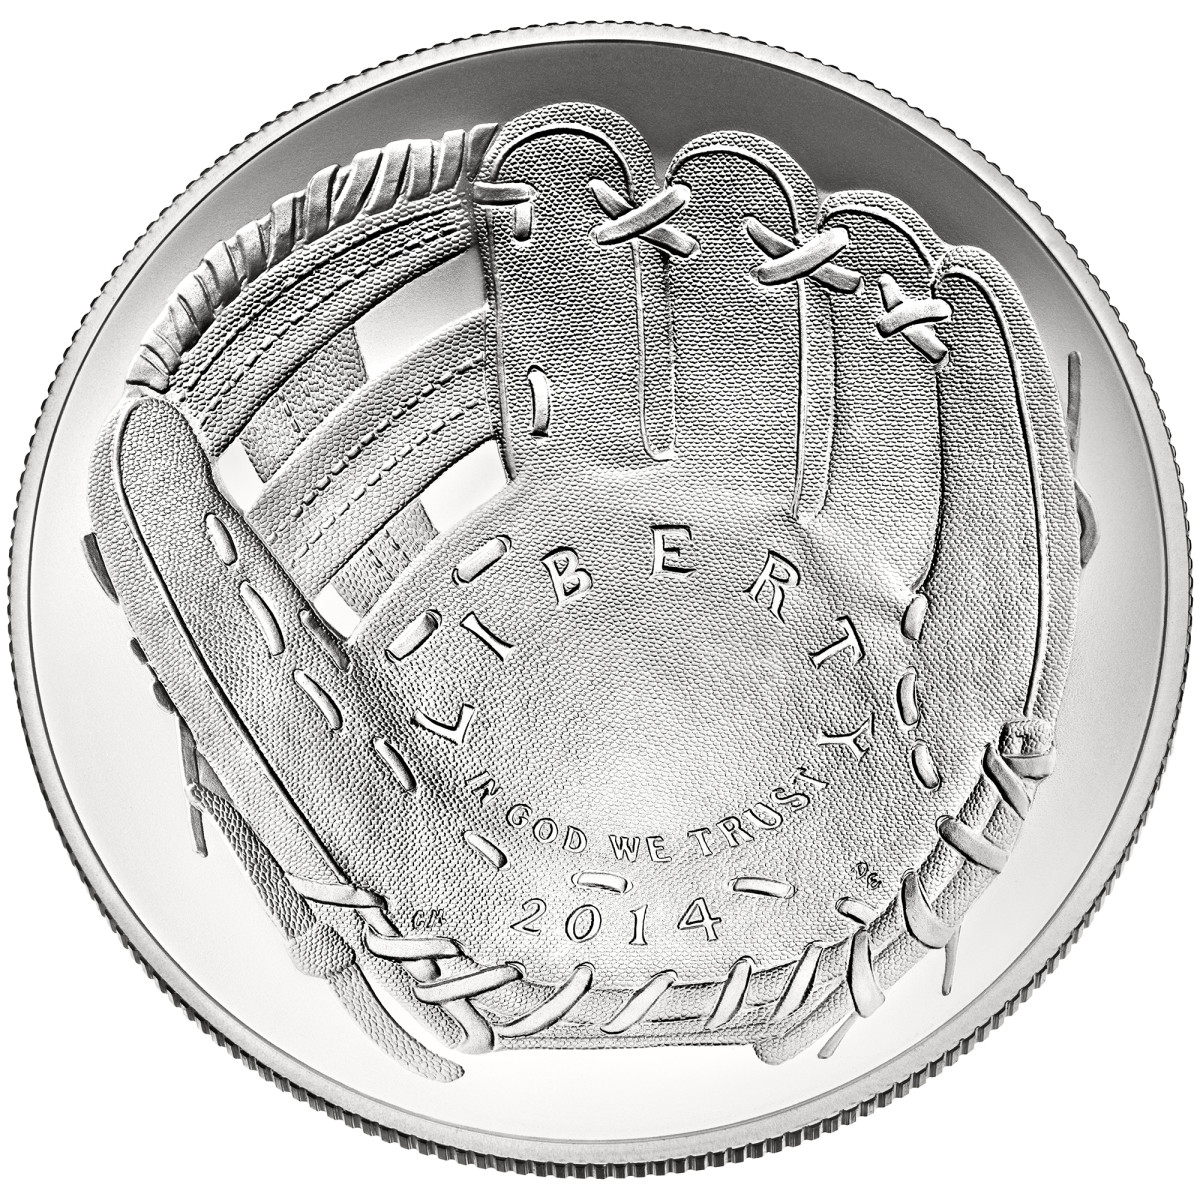 Should the successful cupped baseball coins be followed by more U.S. cupped issues?